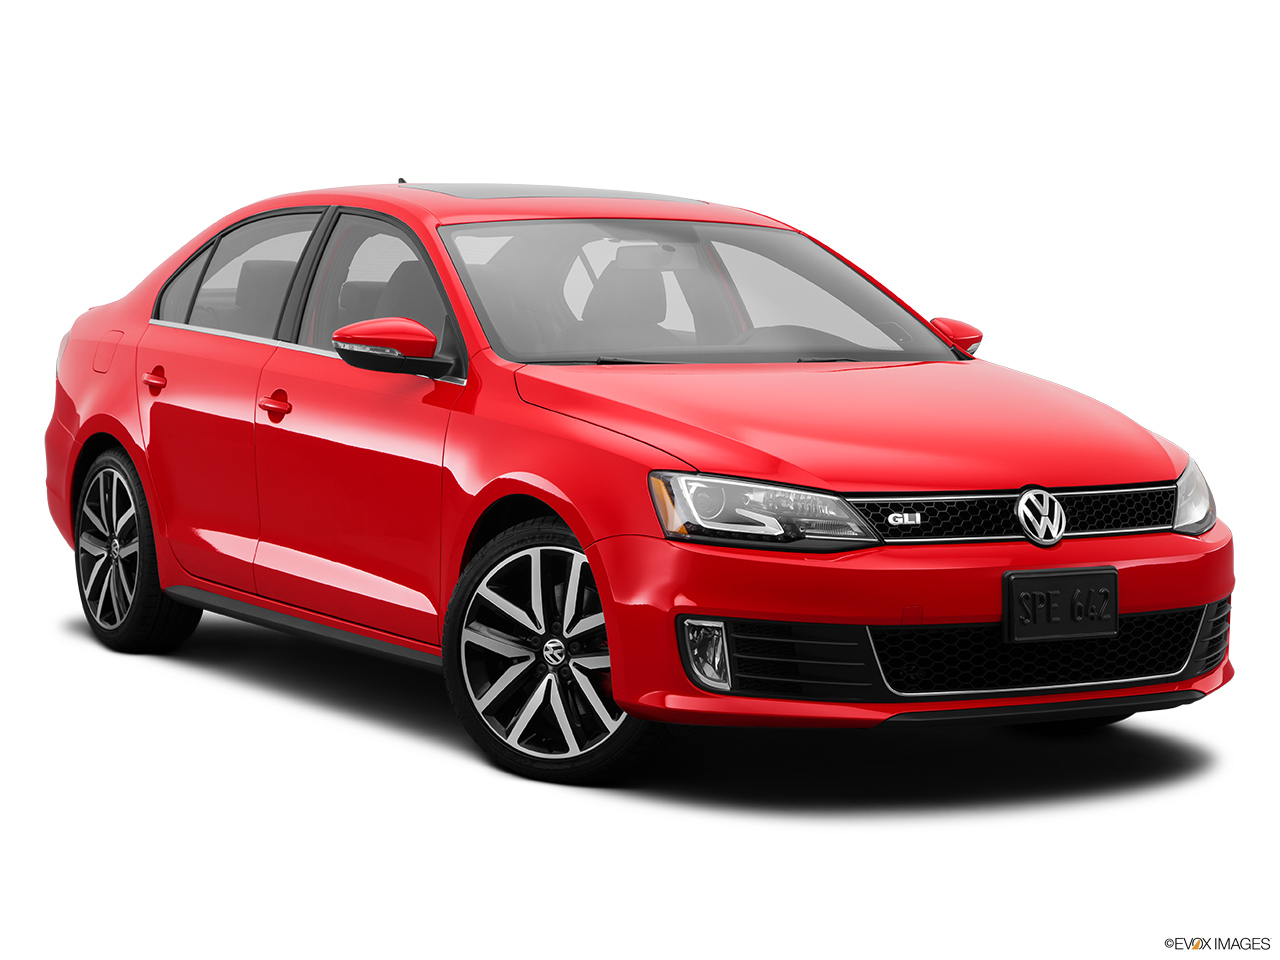 2014 volkswagen jetta sedan dsg gli autobahn. Black Bedroom Furniture Sets. Home Design Ideas